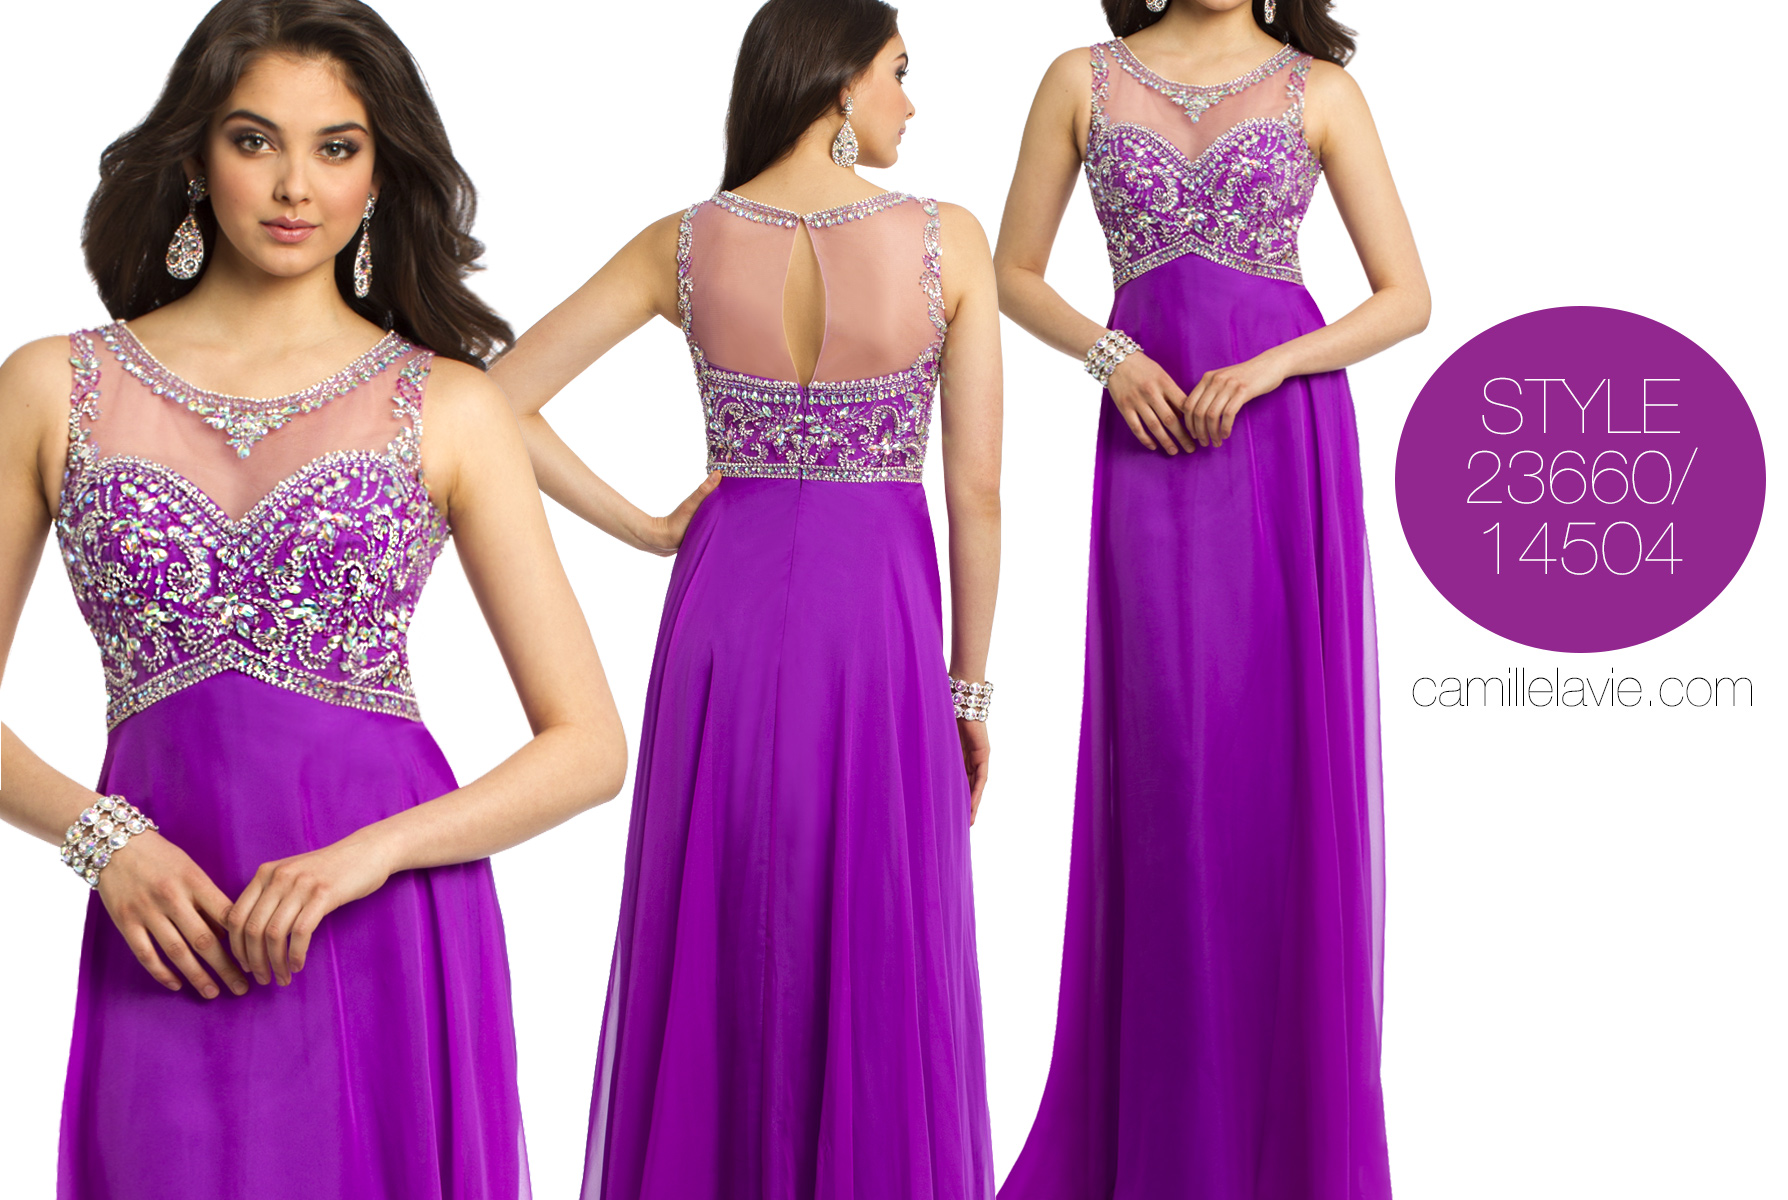 shop purple dresses for prom 2014 at camille la vie ...